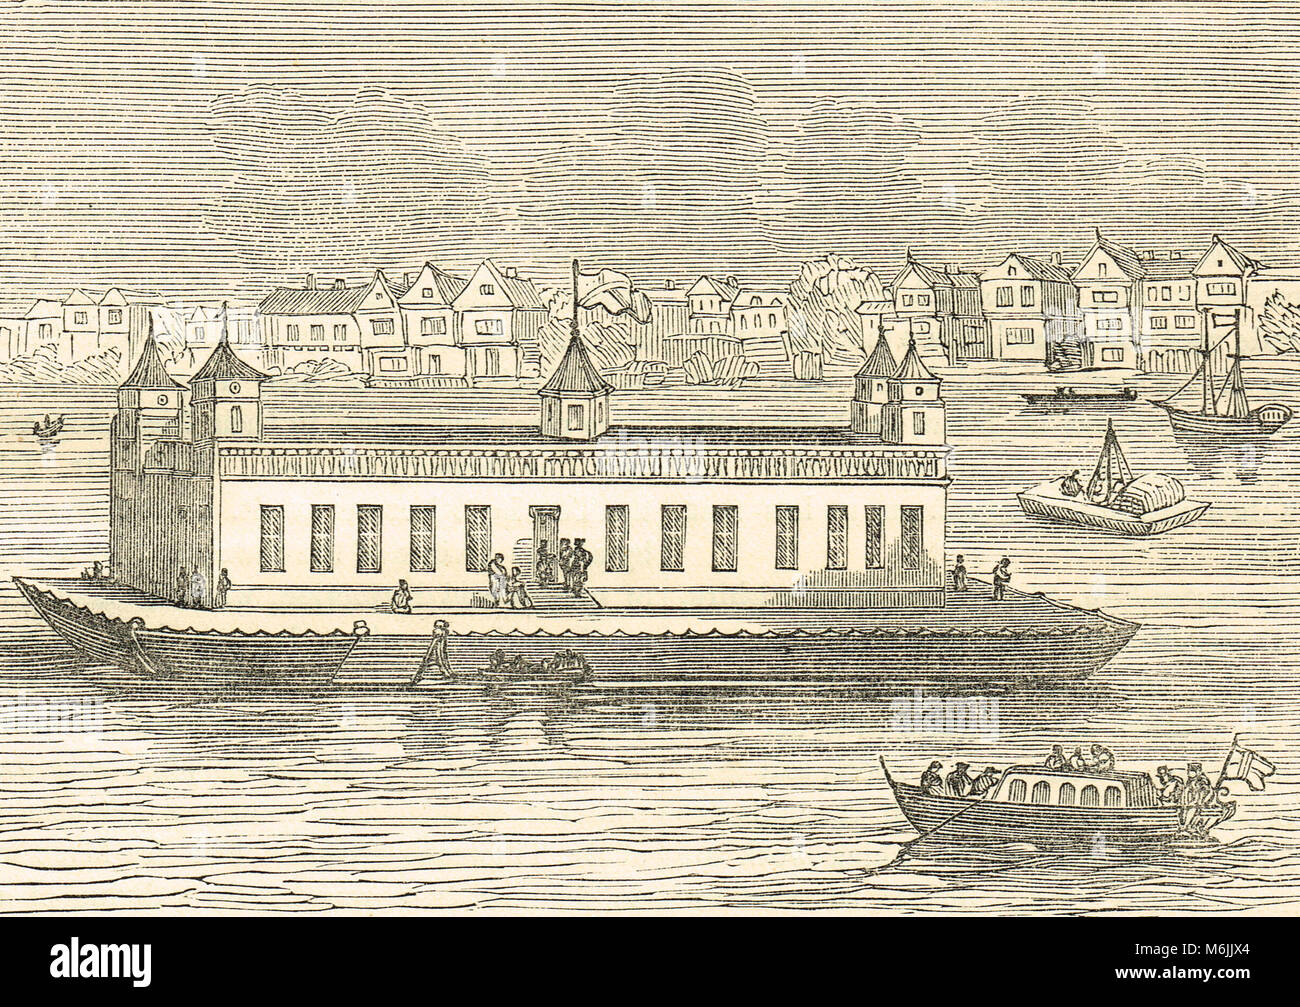 The Folly, on the River Thames, 17th Century, floating House of Entertainment, in the reign of Charles II - Stock Image